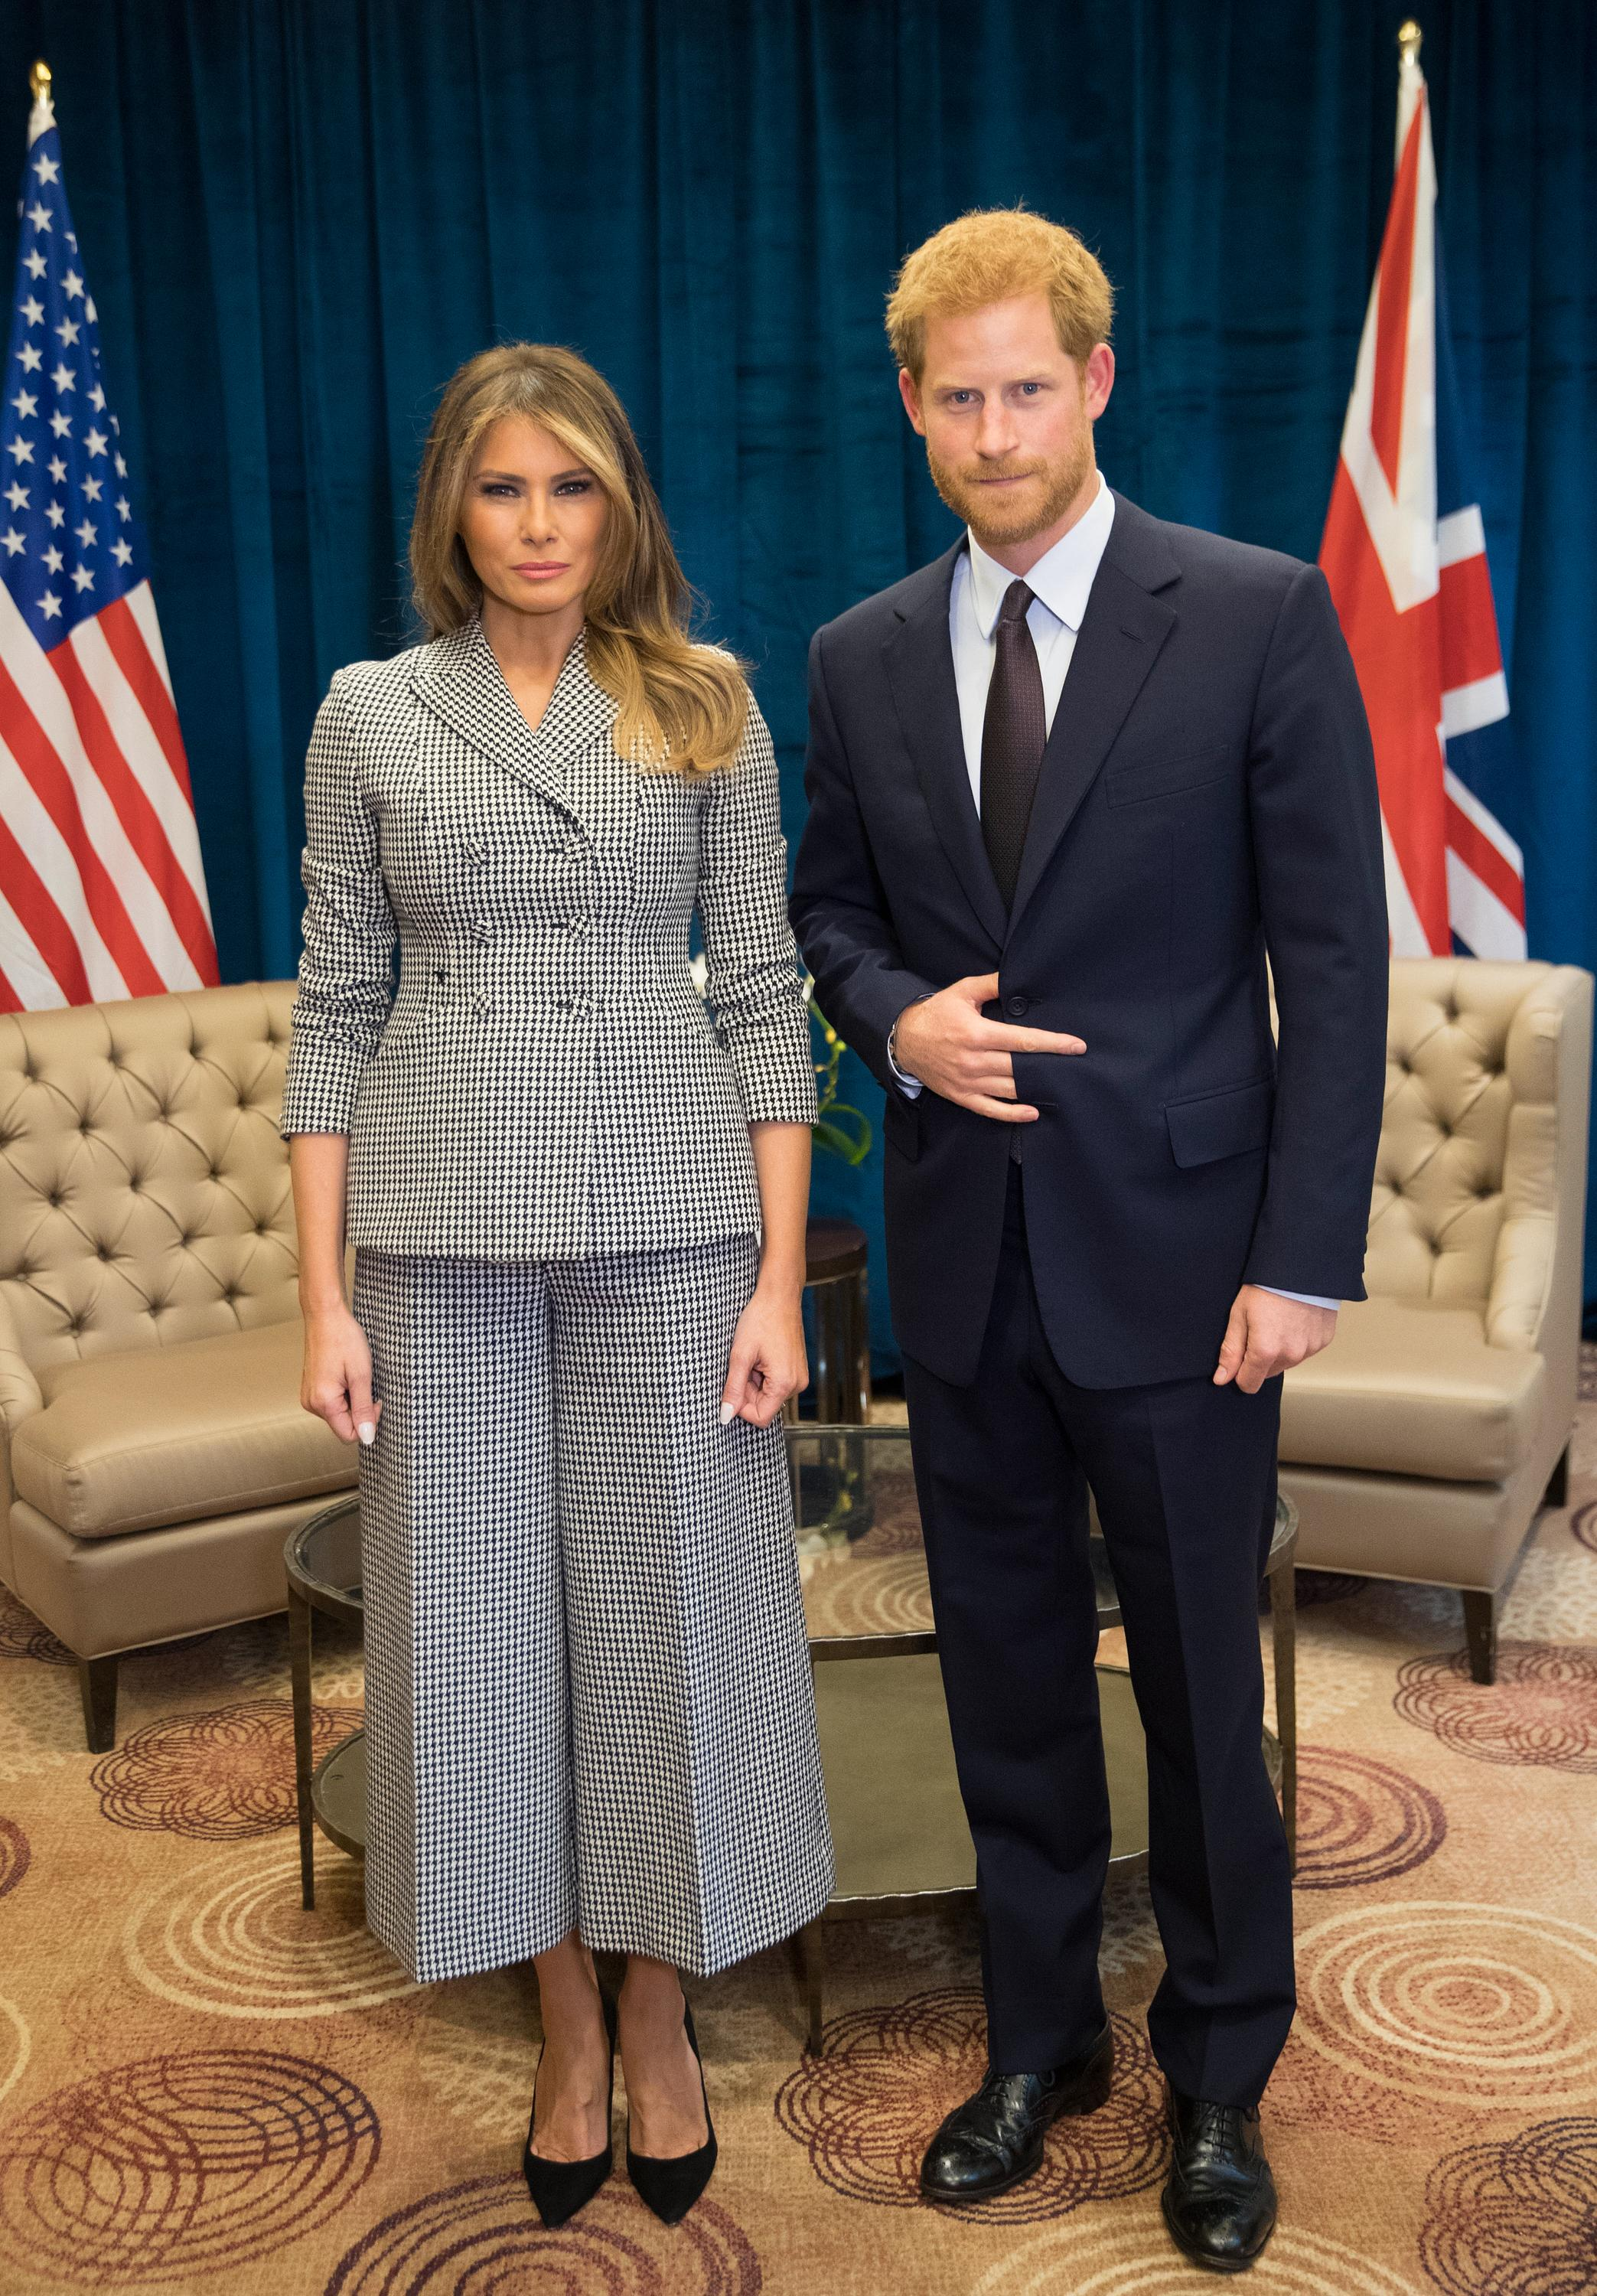 prince harry flashes hand symbol in flotus pic